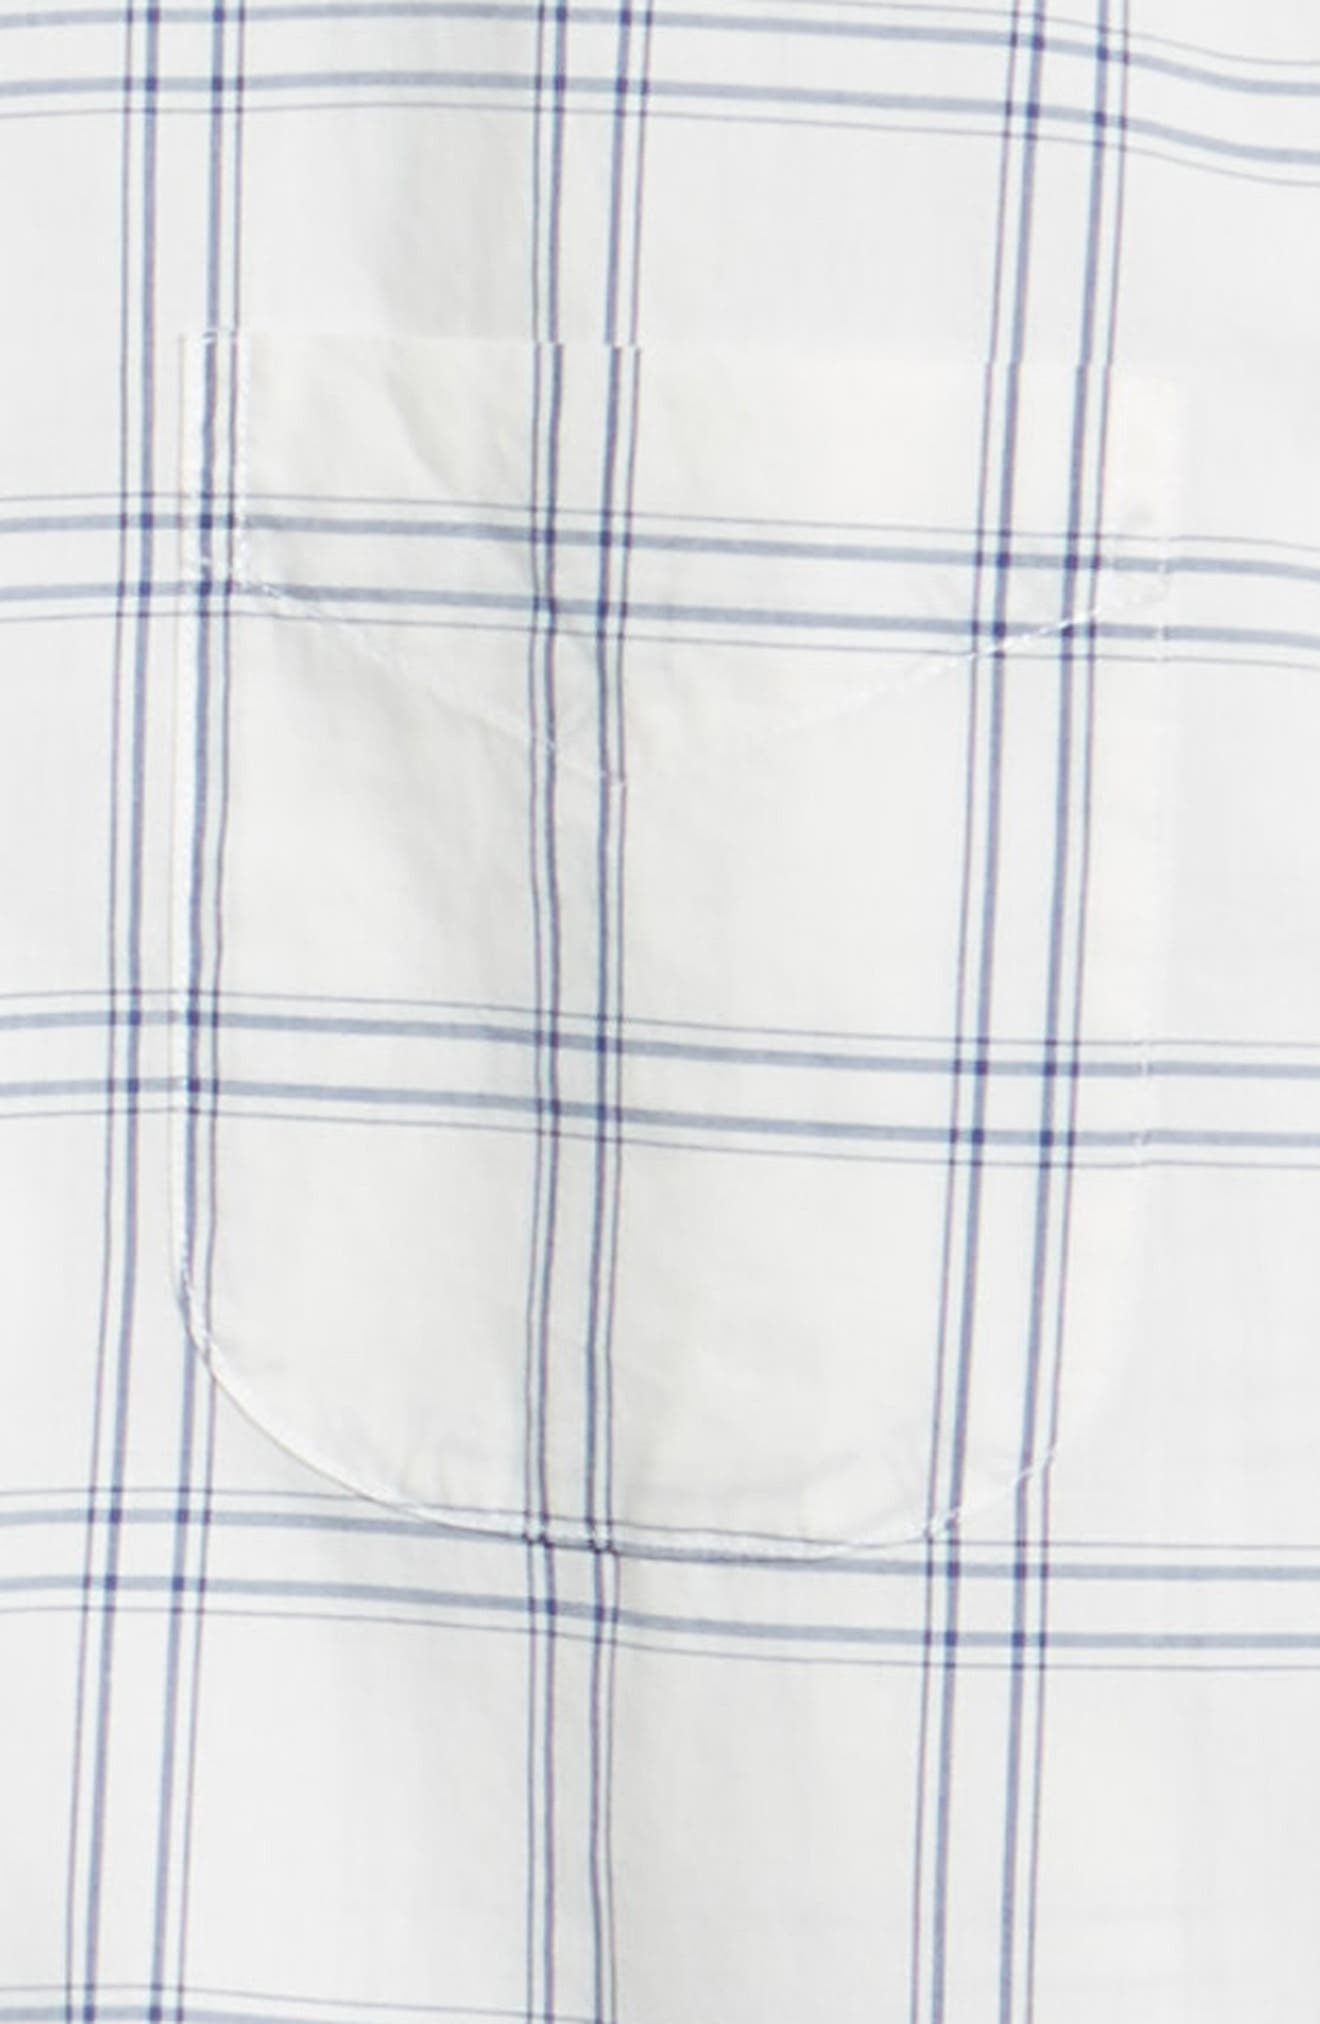 Summerweight Slim Fit Plaid Sport Shirt,                             Alternate thumbnail 6, color,                             100